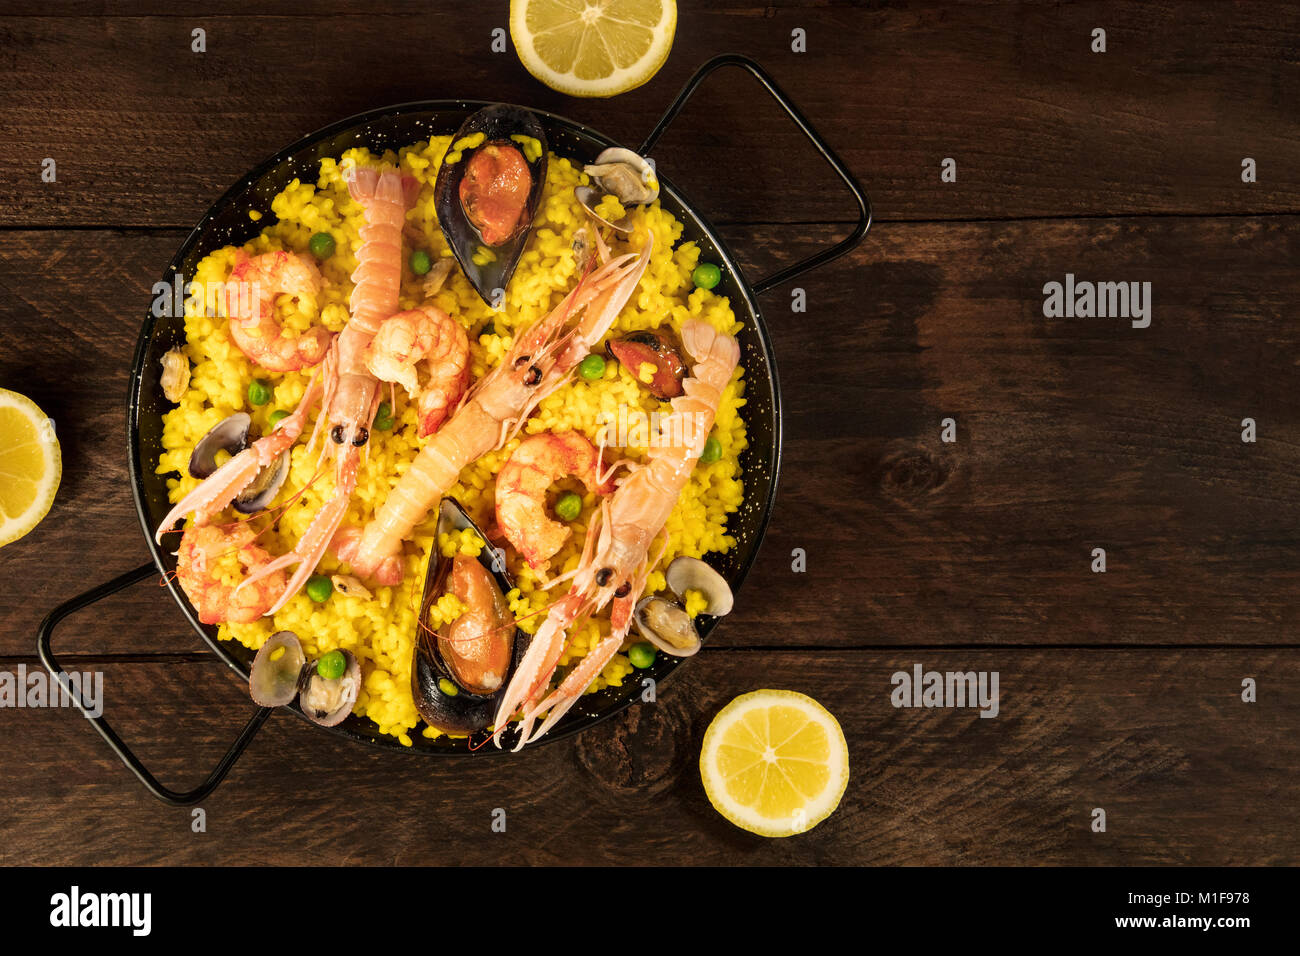 Spanish seafood paella in paellera, with lemons and copyspace - Stock Image